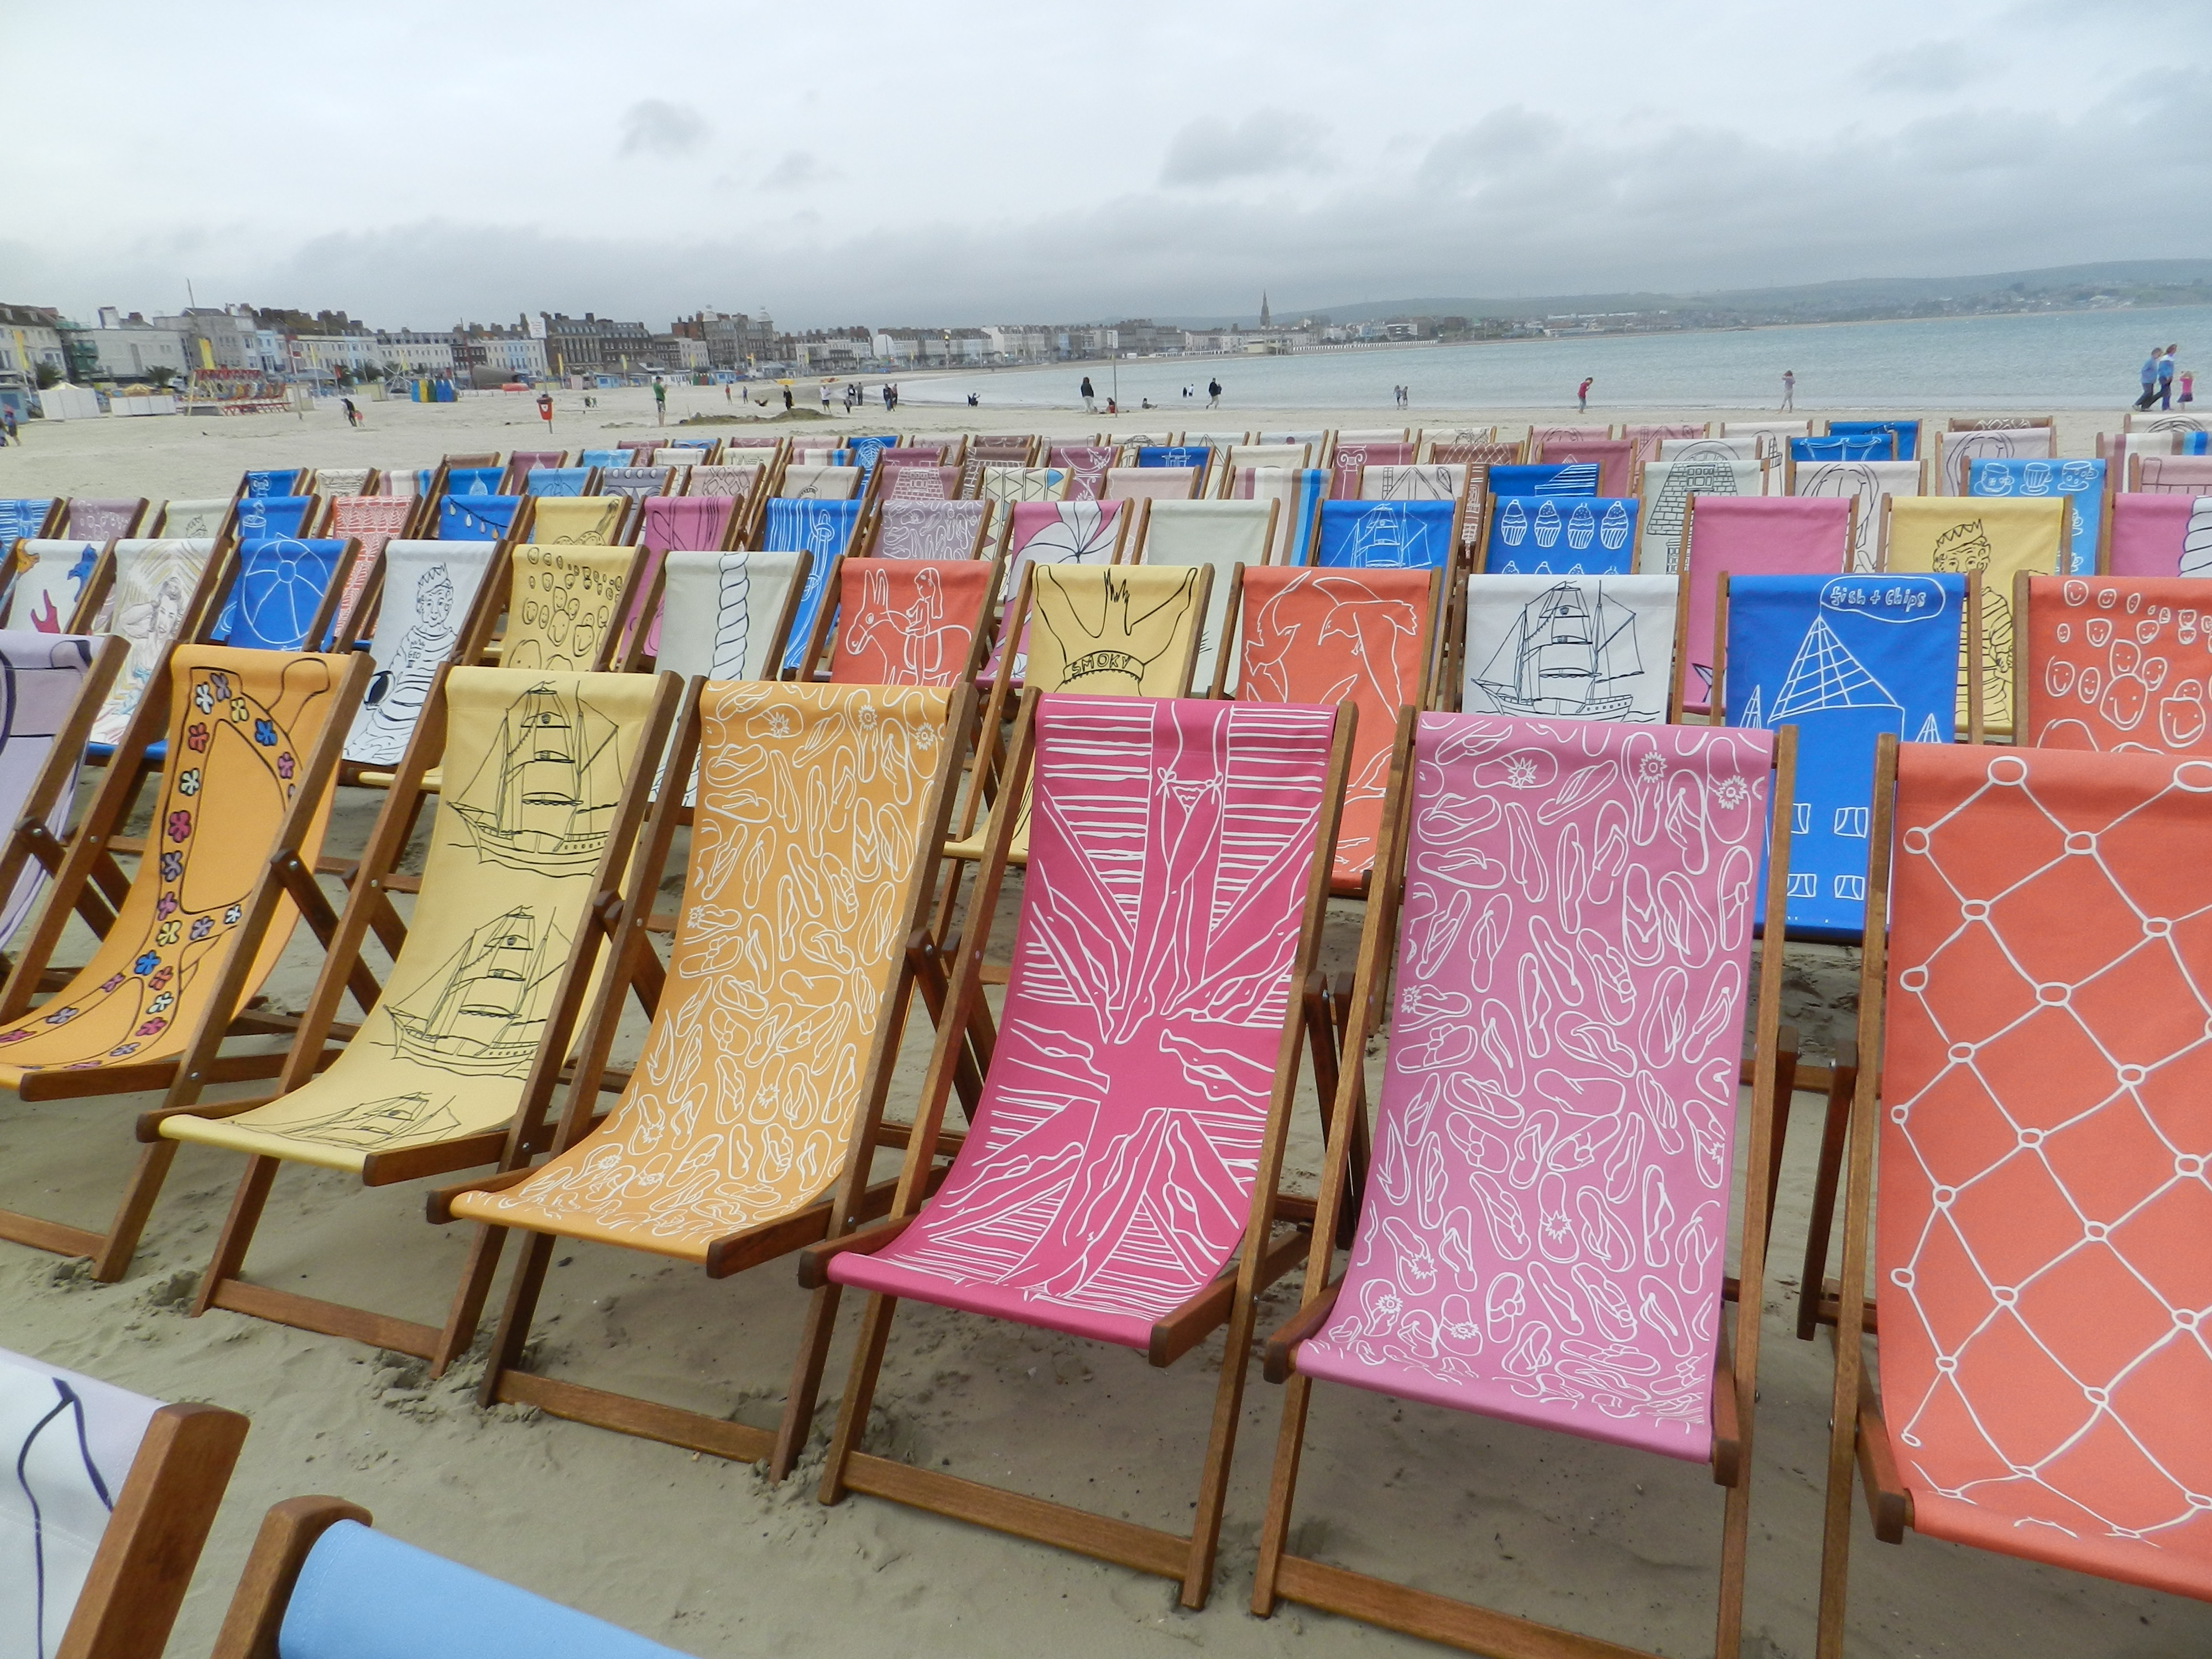 beach no prevstill deckchairs people brighton striped on colourful footage stock clip uk chairs chair deck